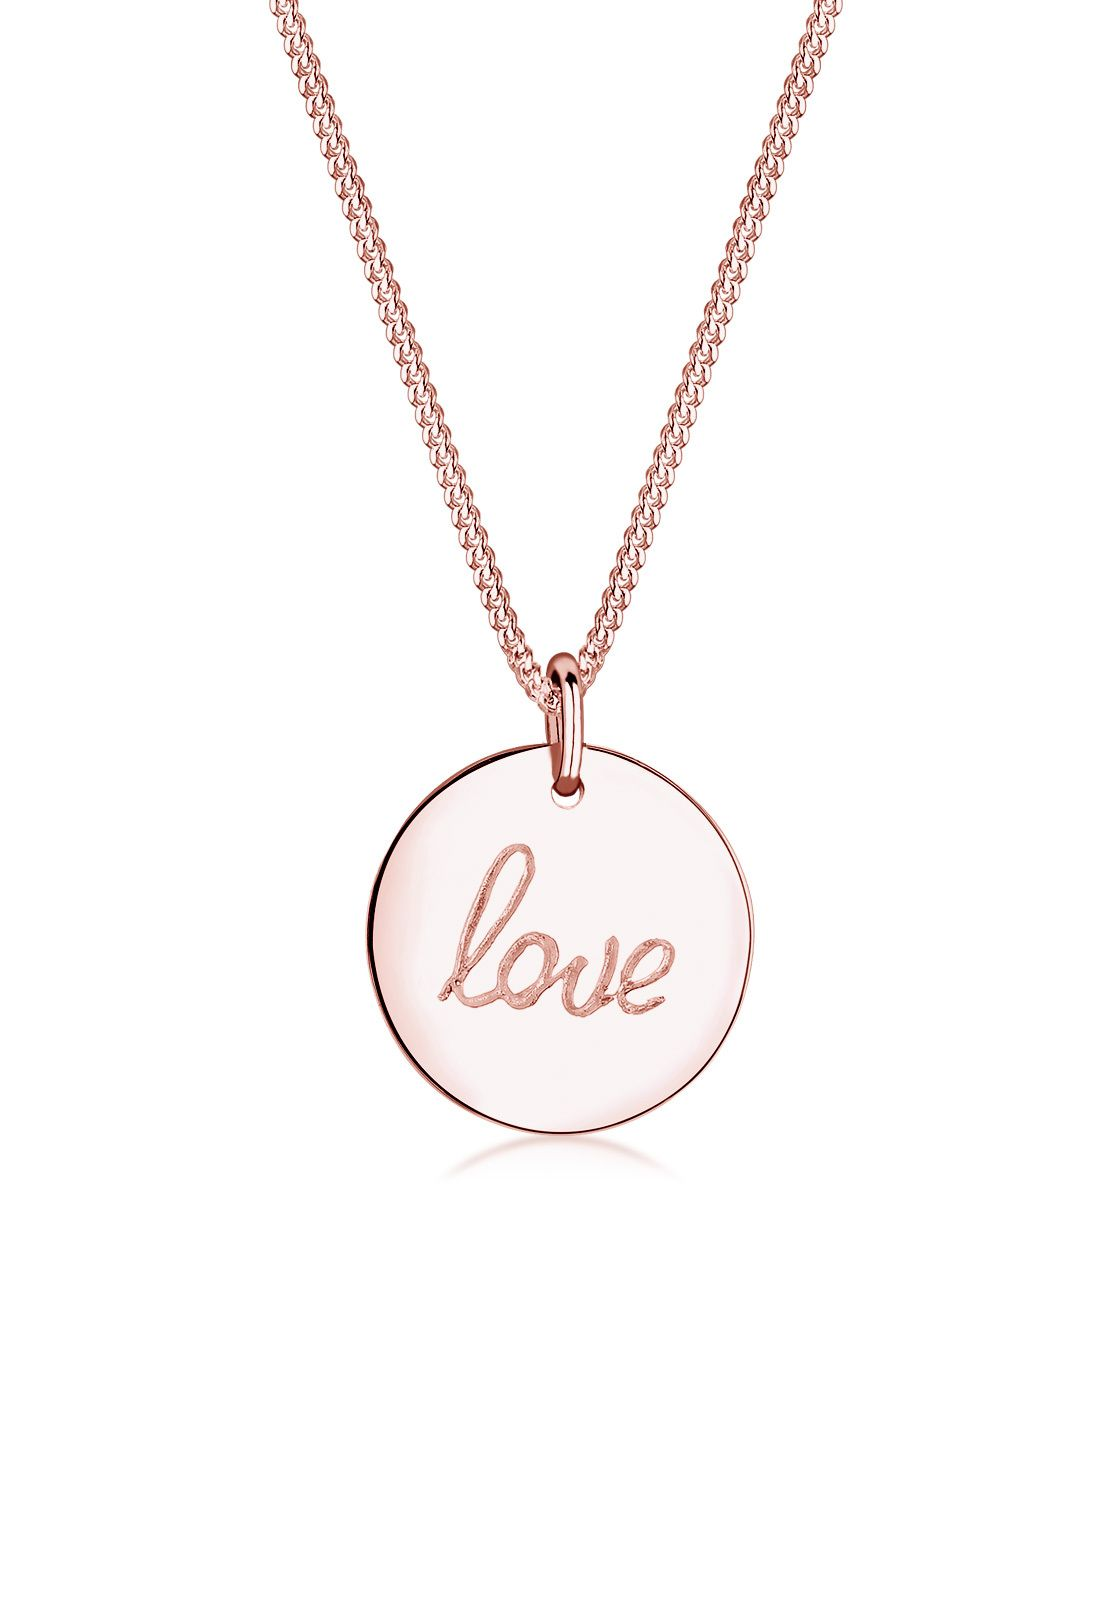 Rose gold plated necklace with love wording on it by Elli